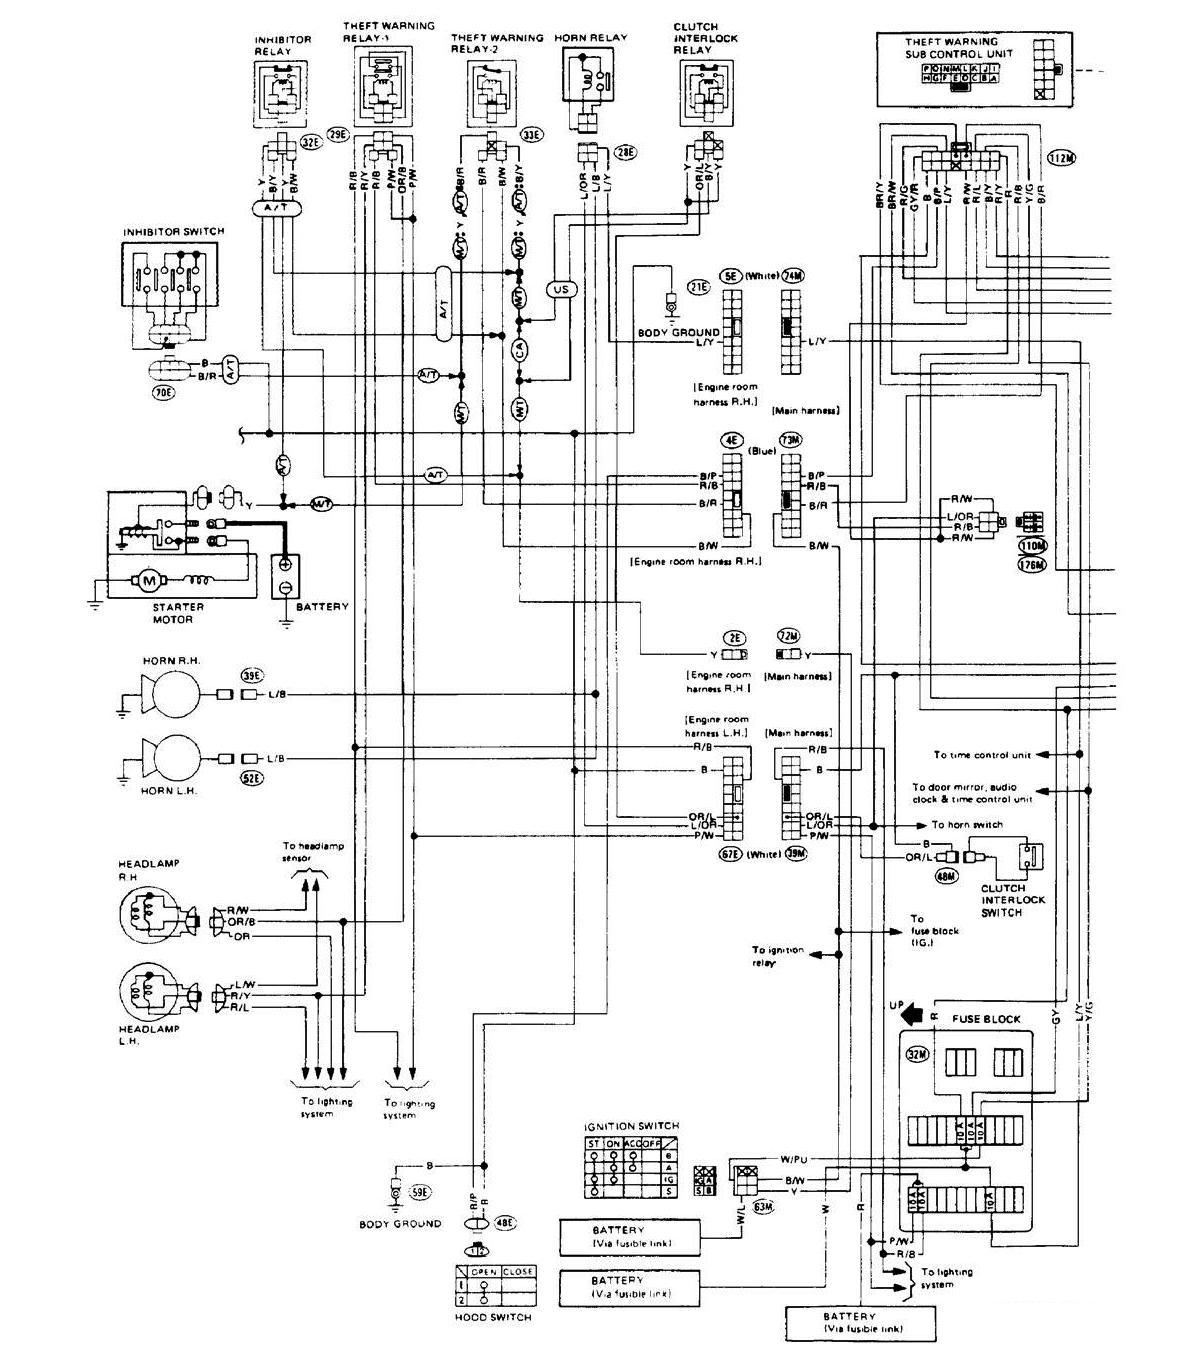 86 300zx wiring harness diagram